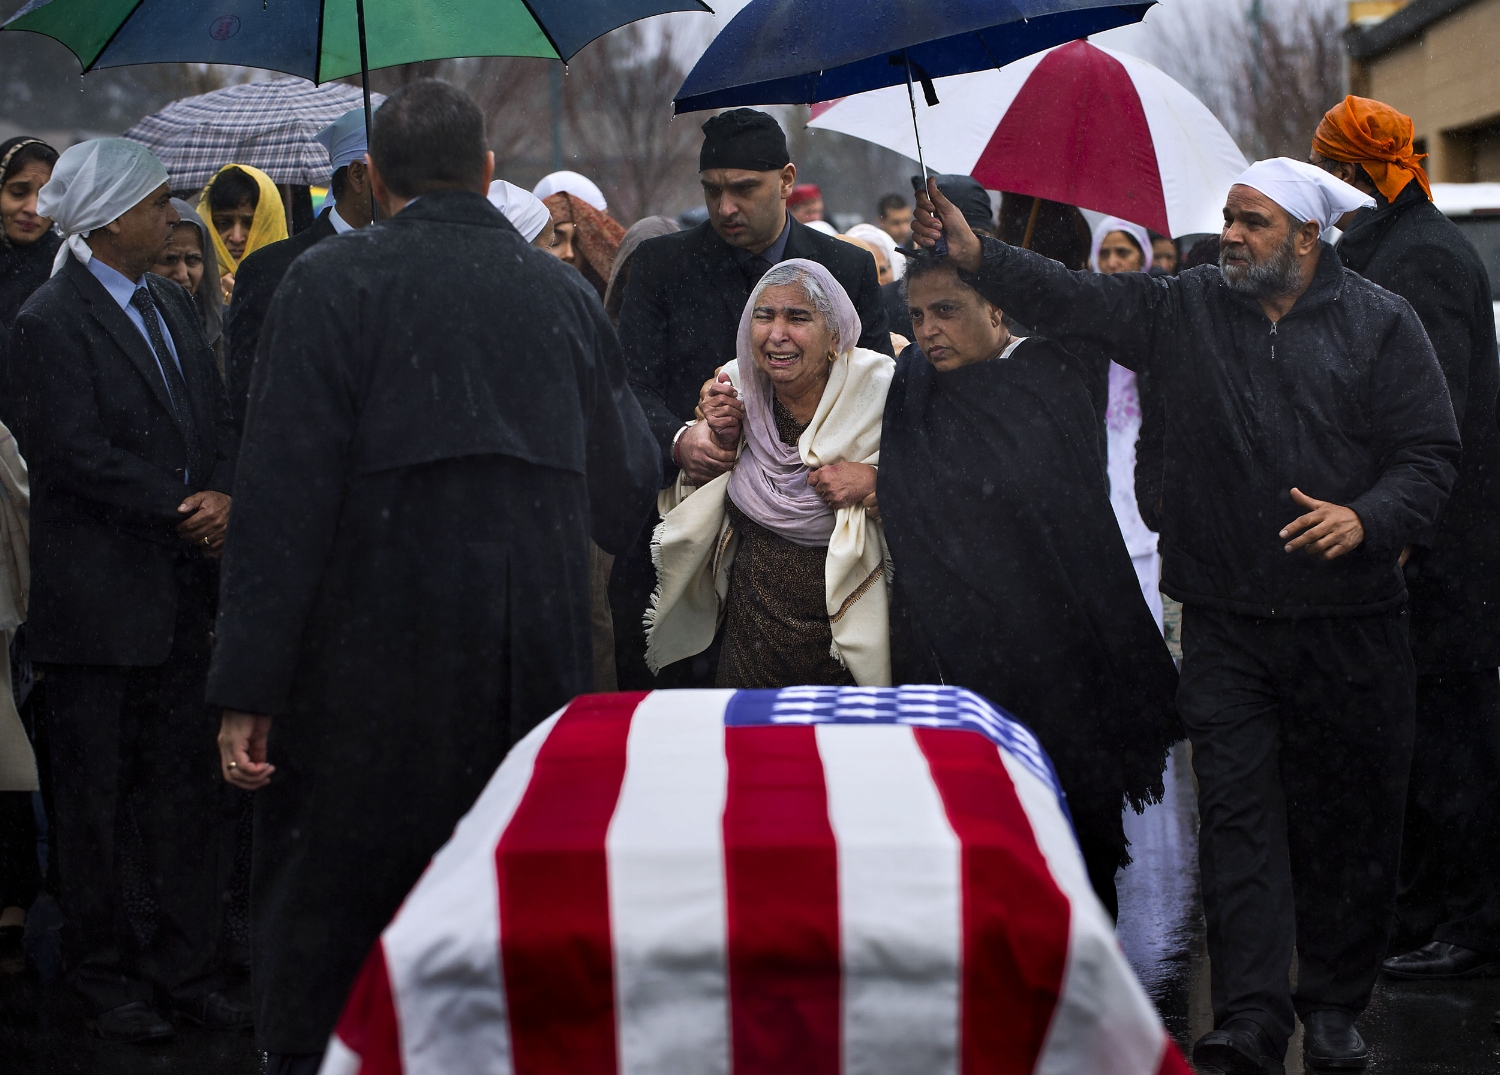 Sukhwinder Kaur, center, is escorted past the flag-draped casket of her son Parminder Singh Shergill at Cherokee Memorial Park in Lodi on Saturday, February 8, 2014. Parminder Singh Shergill was a US Army veteran and was shot to death by police in Lodi.